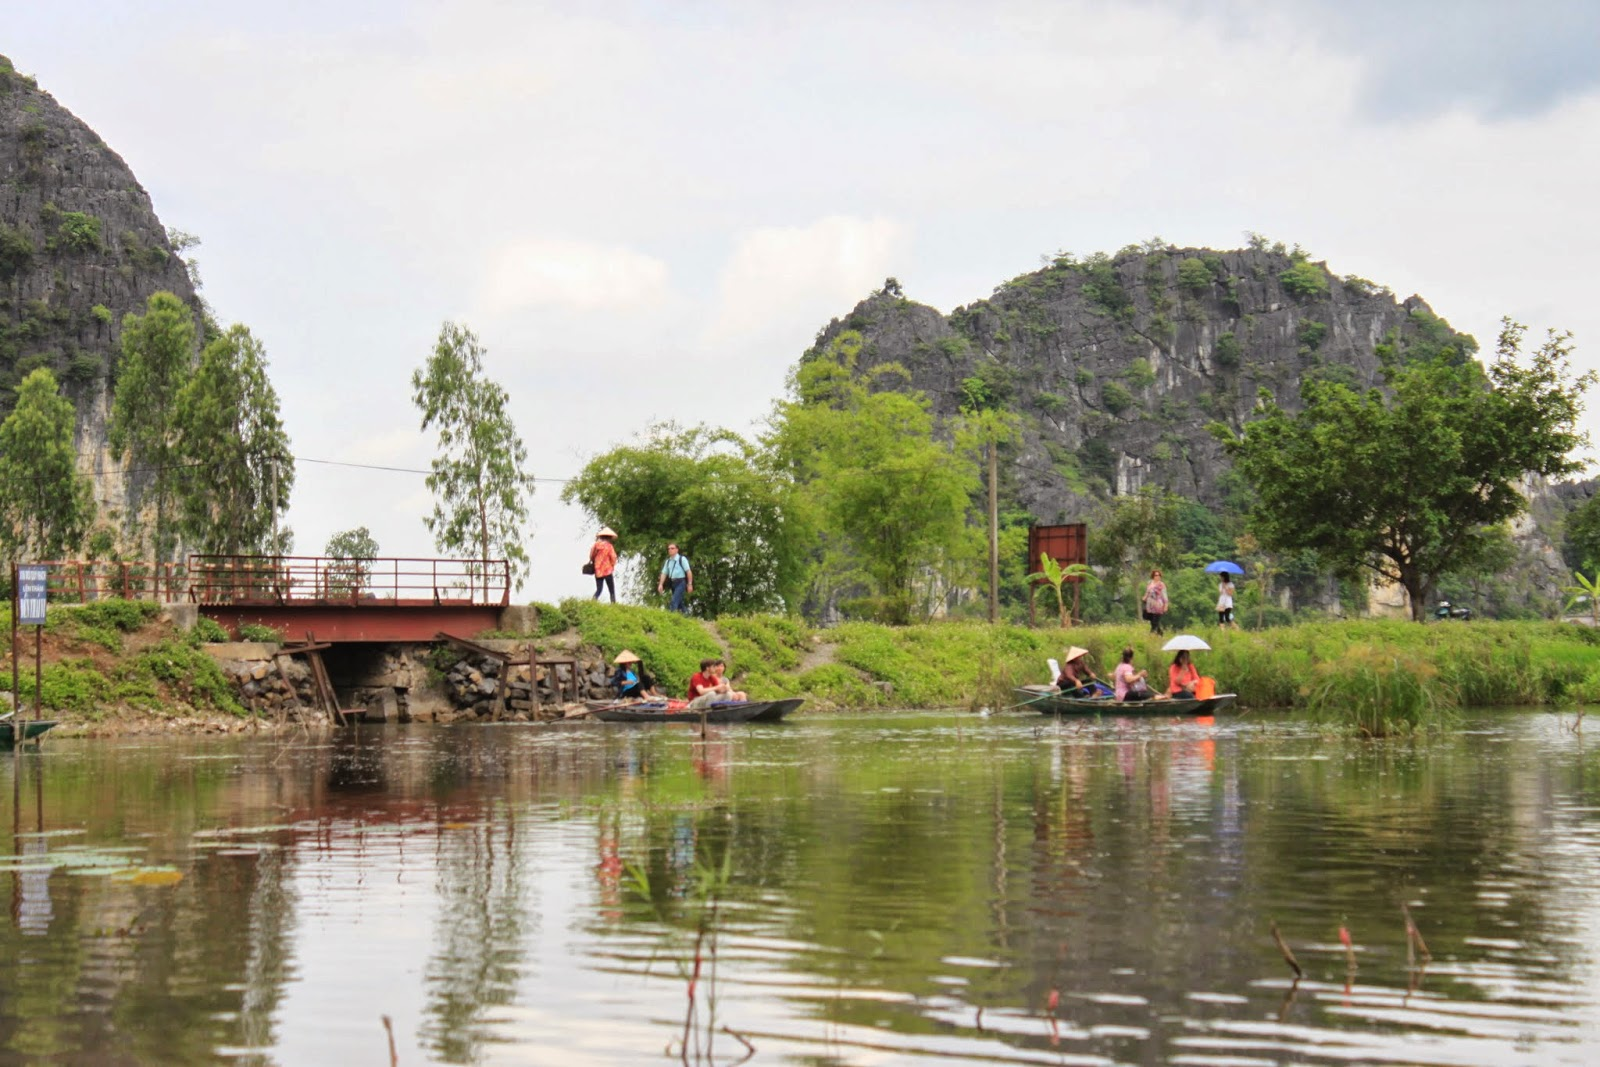 It's an enjoyable moments of simple and laid back lifestyle at Tam Coc near Ninh Binh provinece in the northern of Vietnam